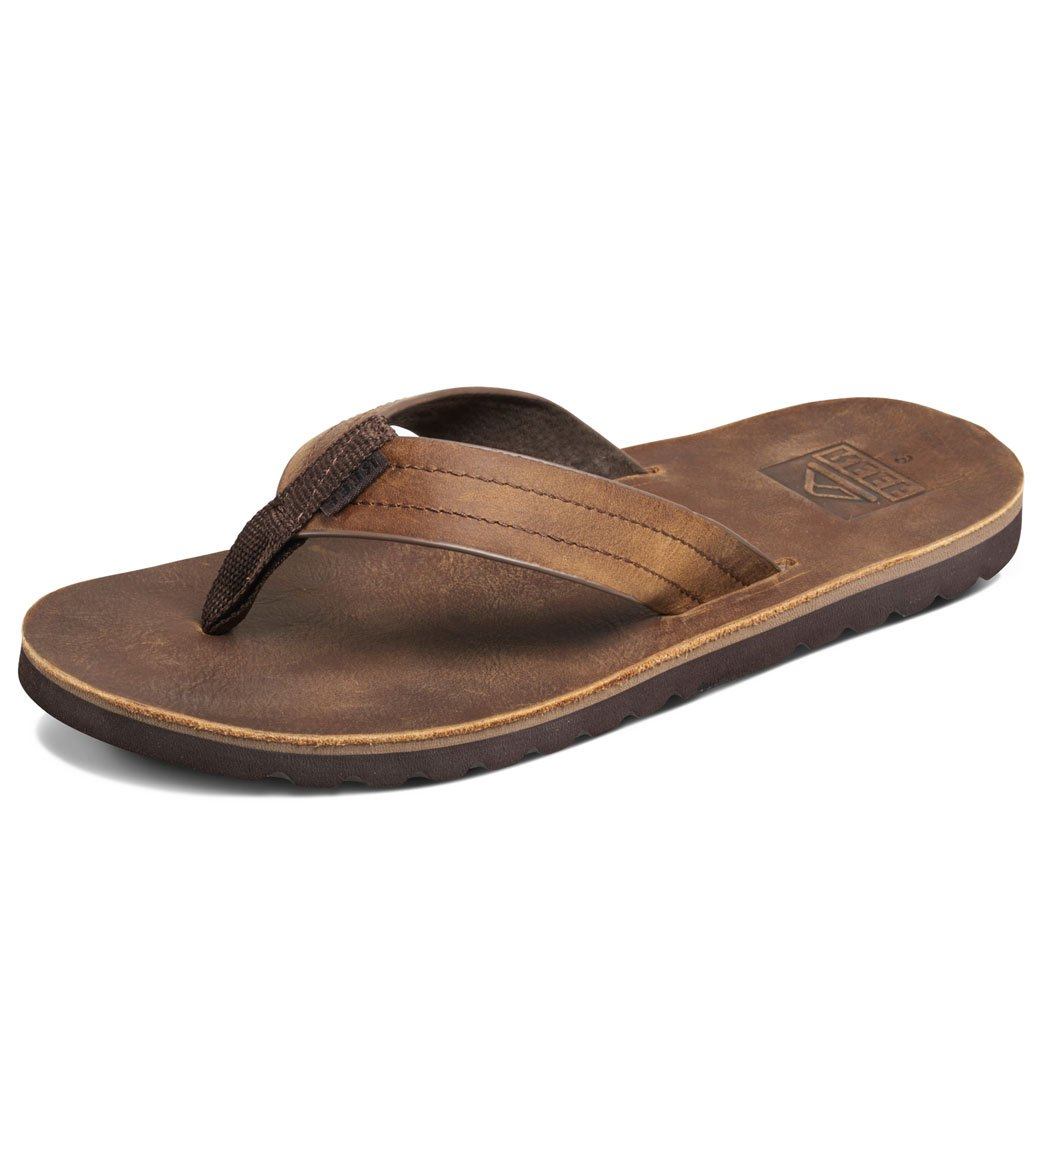 34258fc1b34ce9 Reef Men s Voyage LE Flip Flop at SwimOutlet.com - Free Shipping